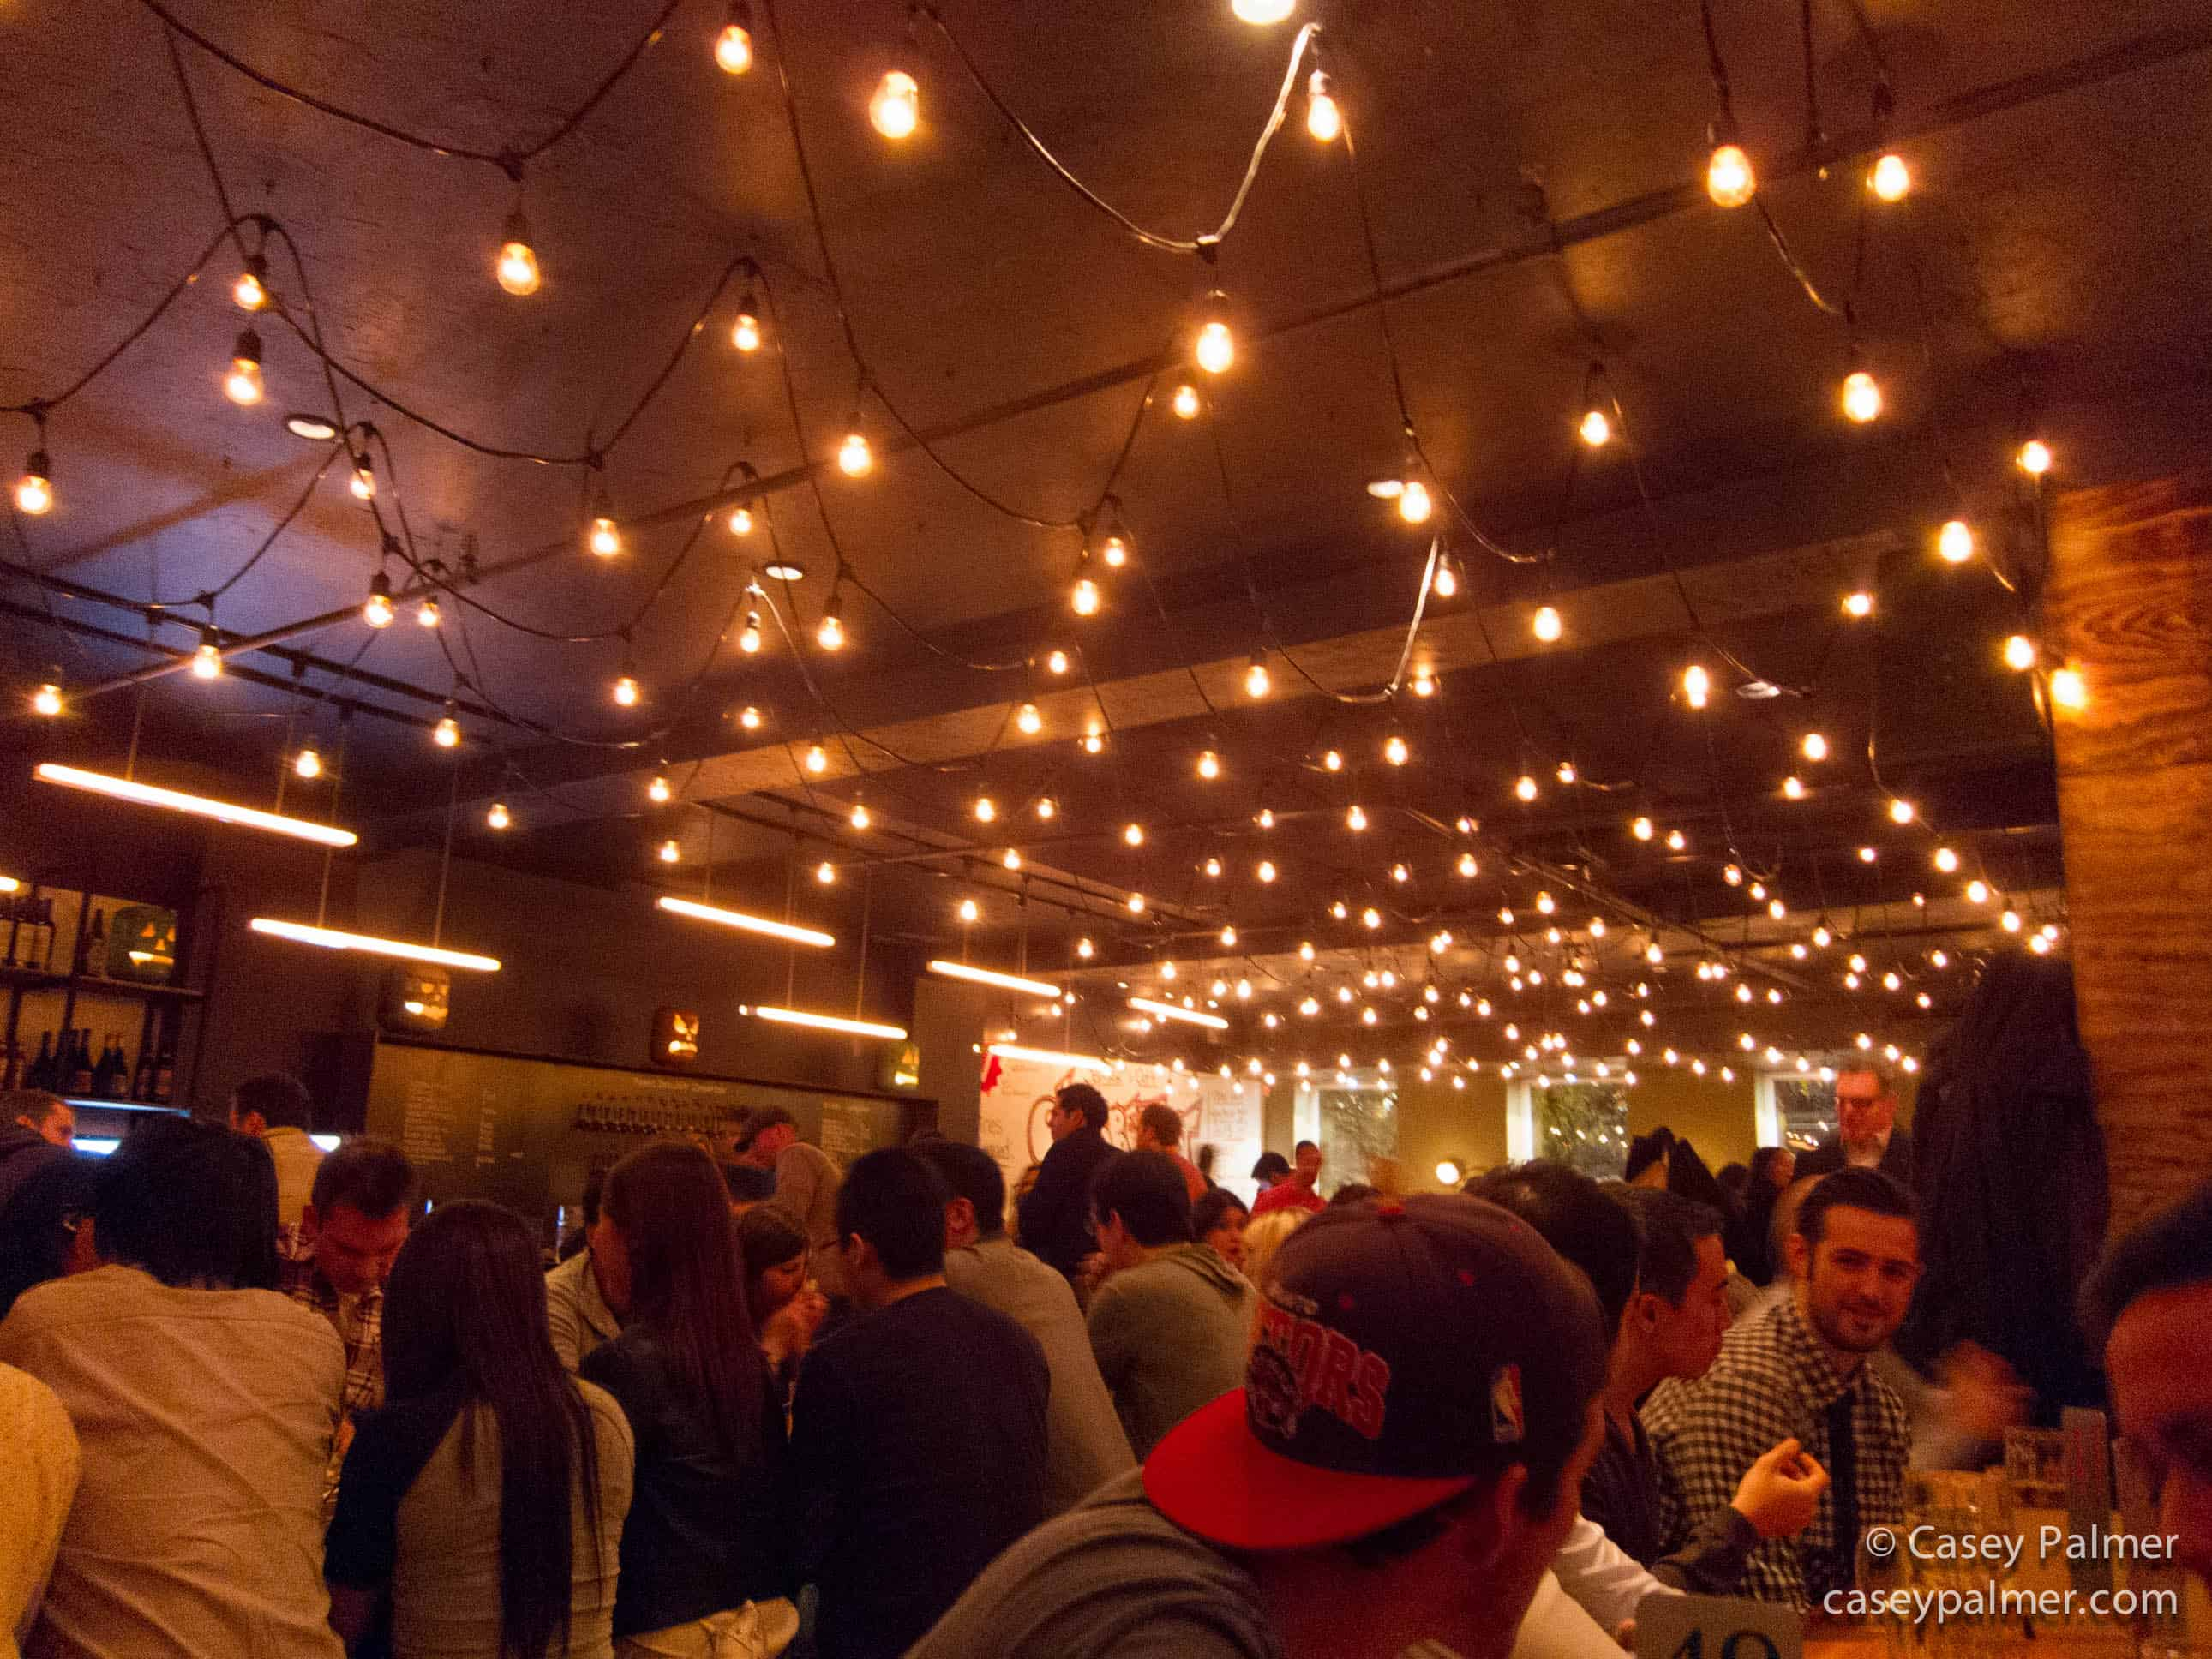 A photo of the ambiance at WVRST